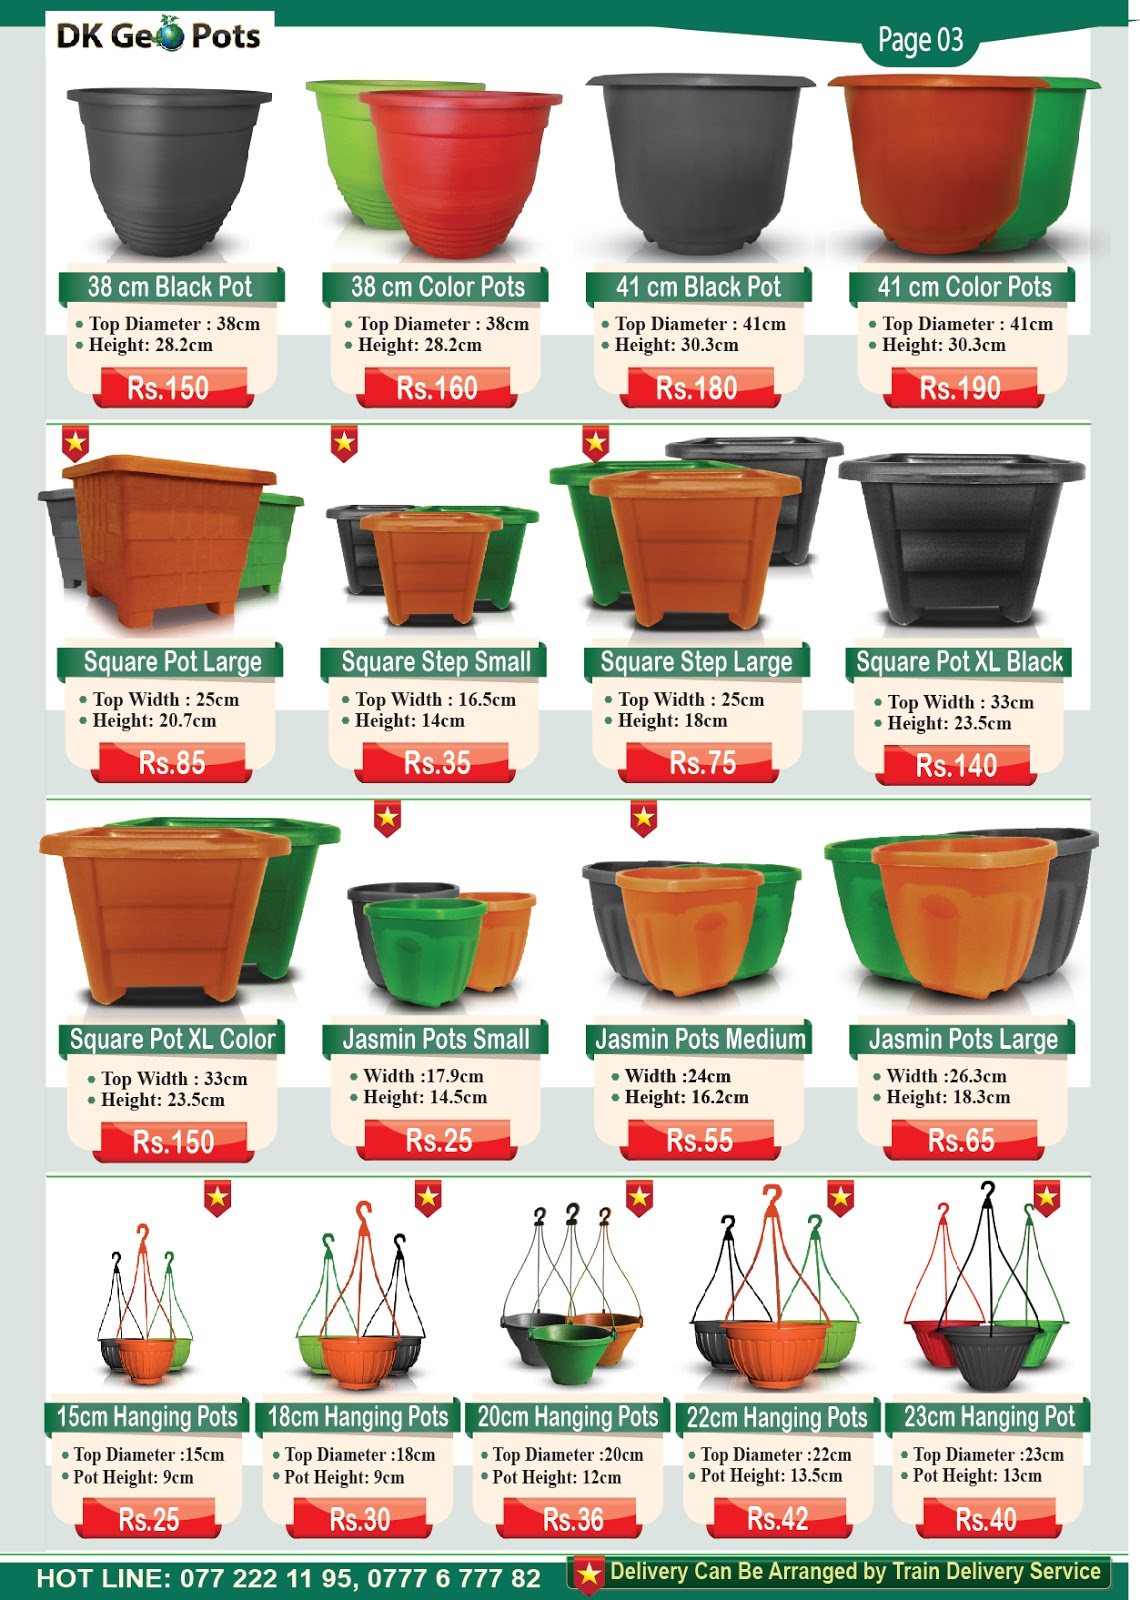 Whole Price List Dk Geo Pots